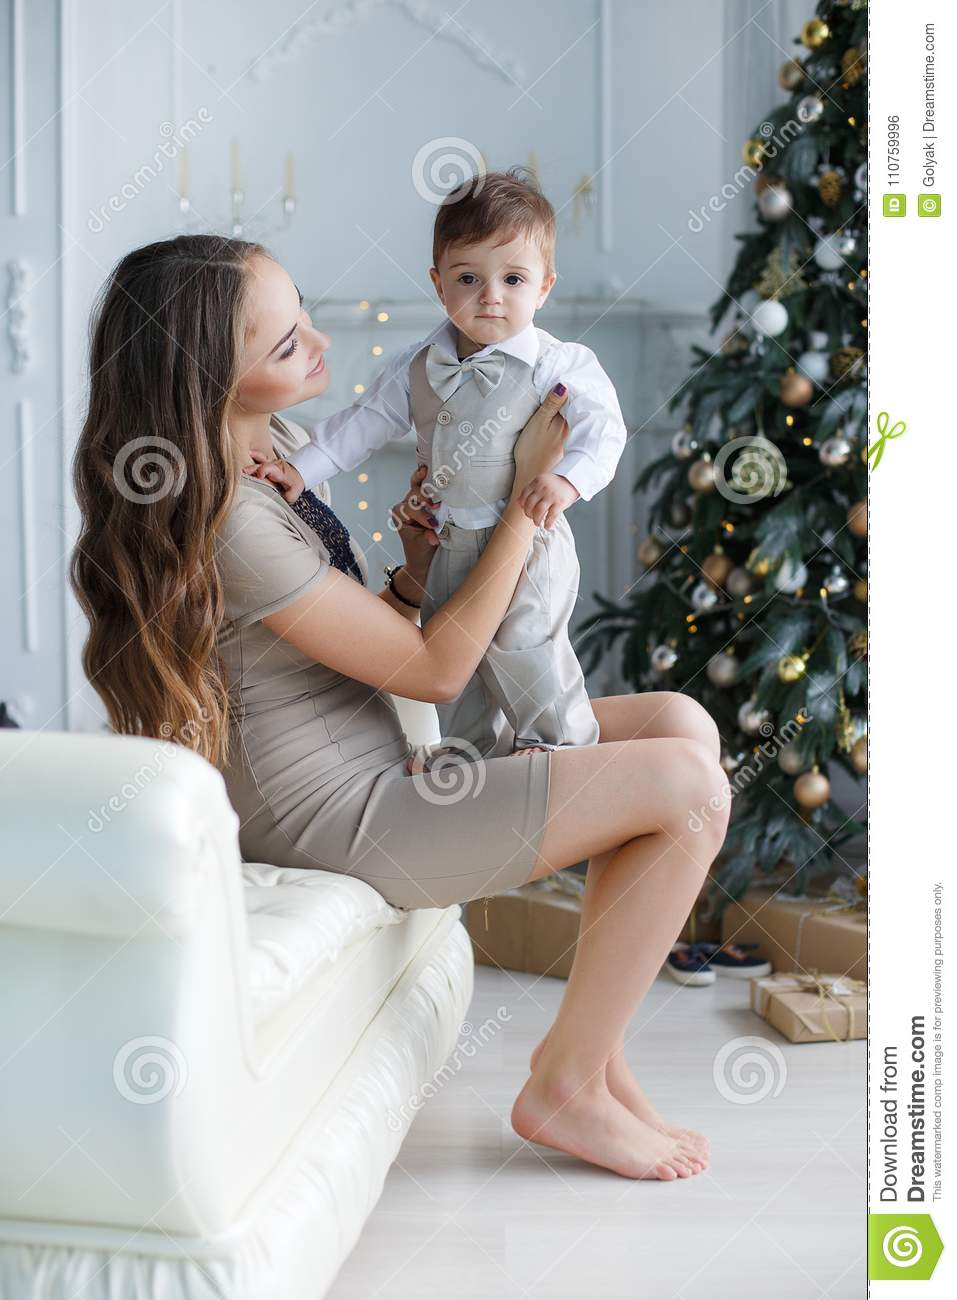 Mom With A Small Son Near A Beautiful Christmas Tree In His House Stock Photo Image Of Domestic Decorating 110759996